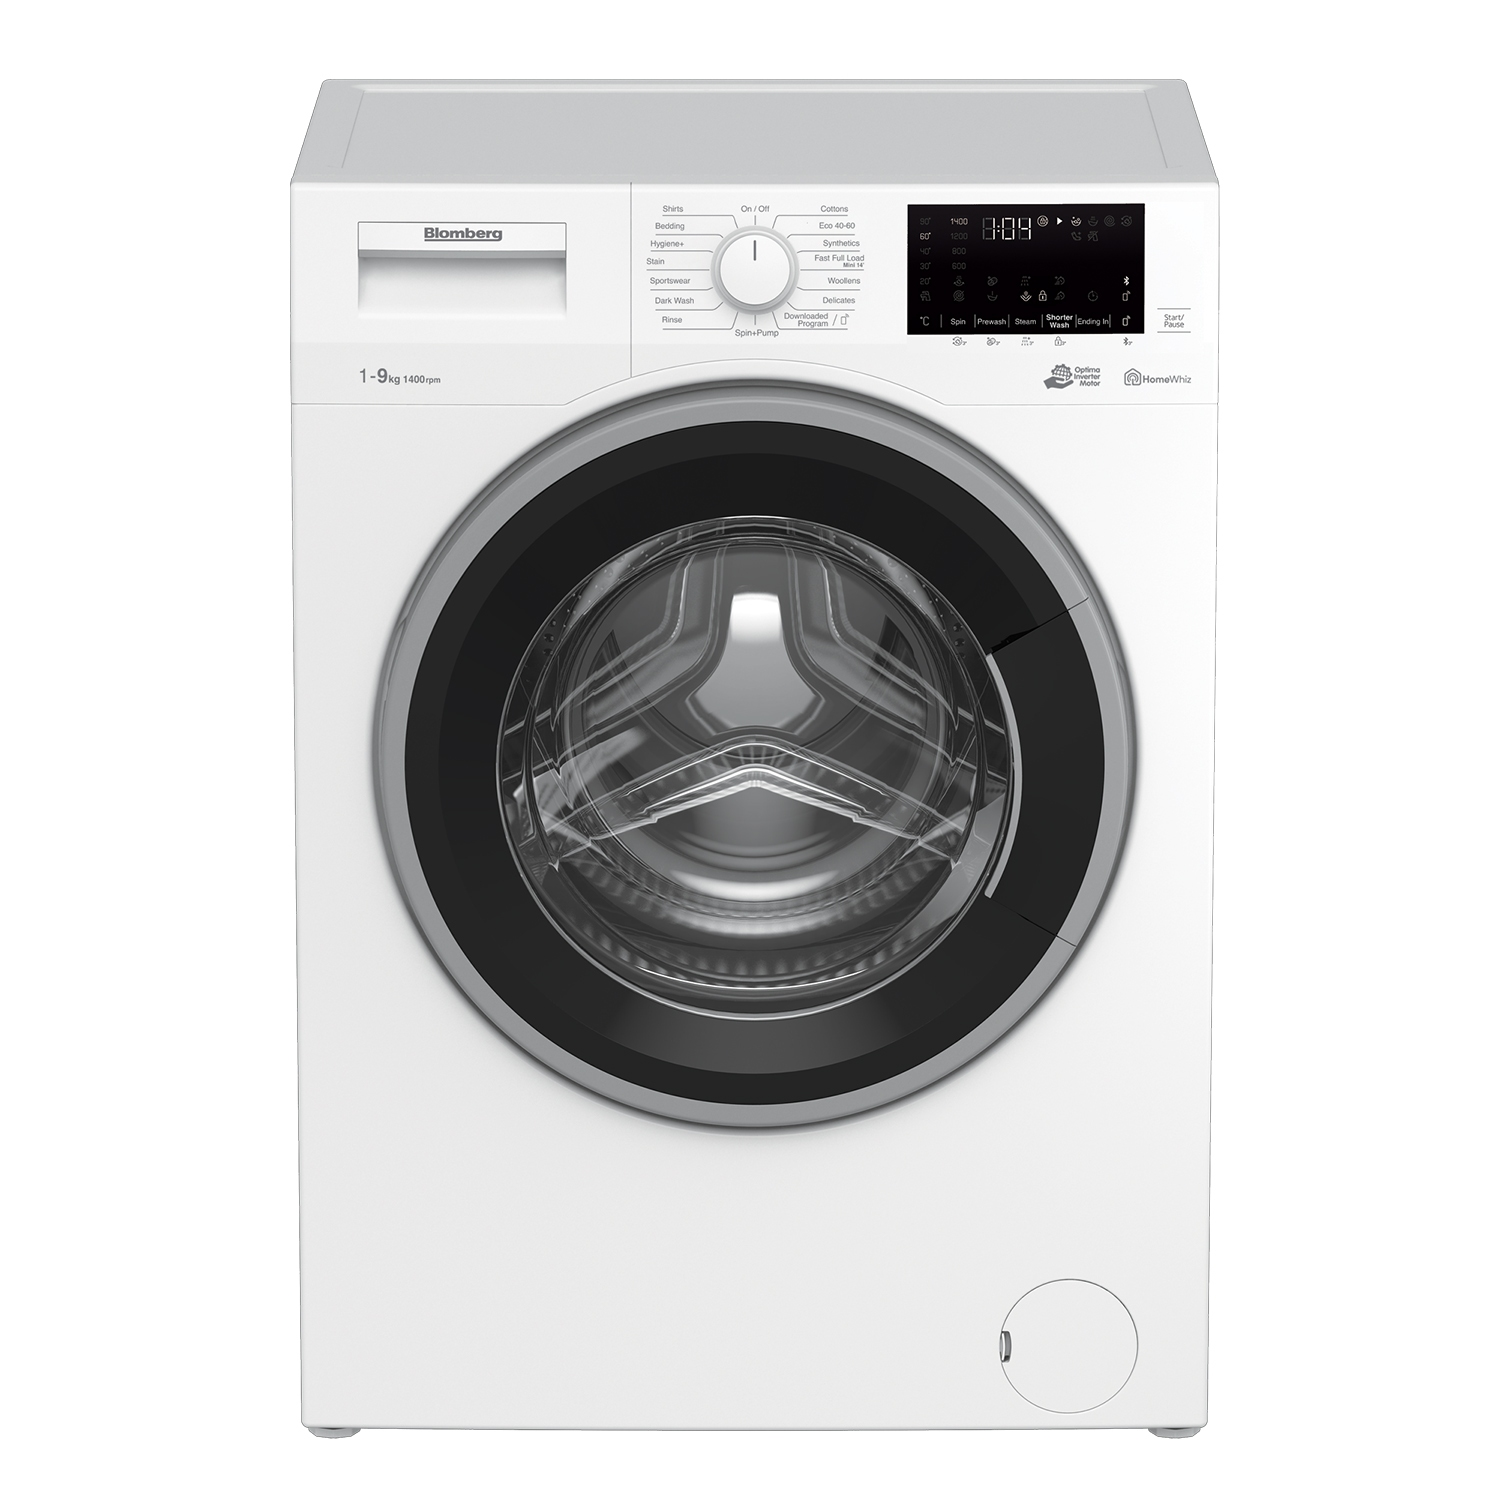 Blomberg LWF194410W 9kg 1400 Spin Washing Machine with Bluetooth Connection - White - 0